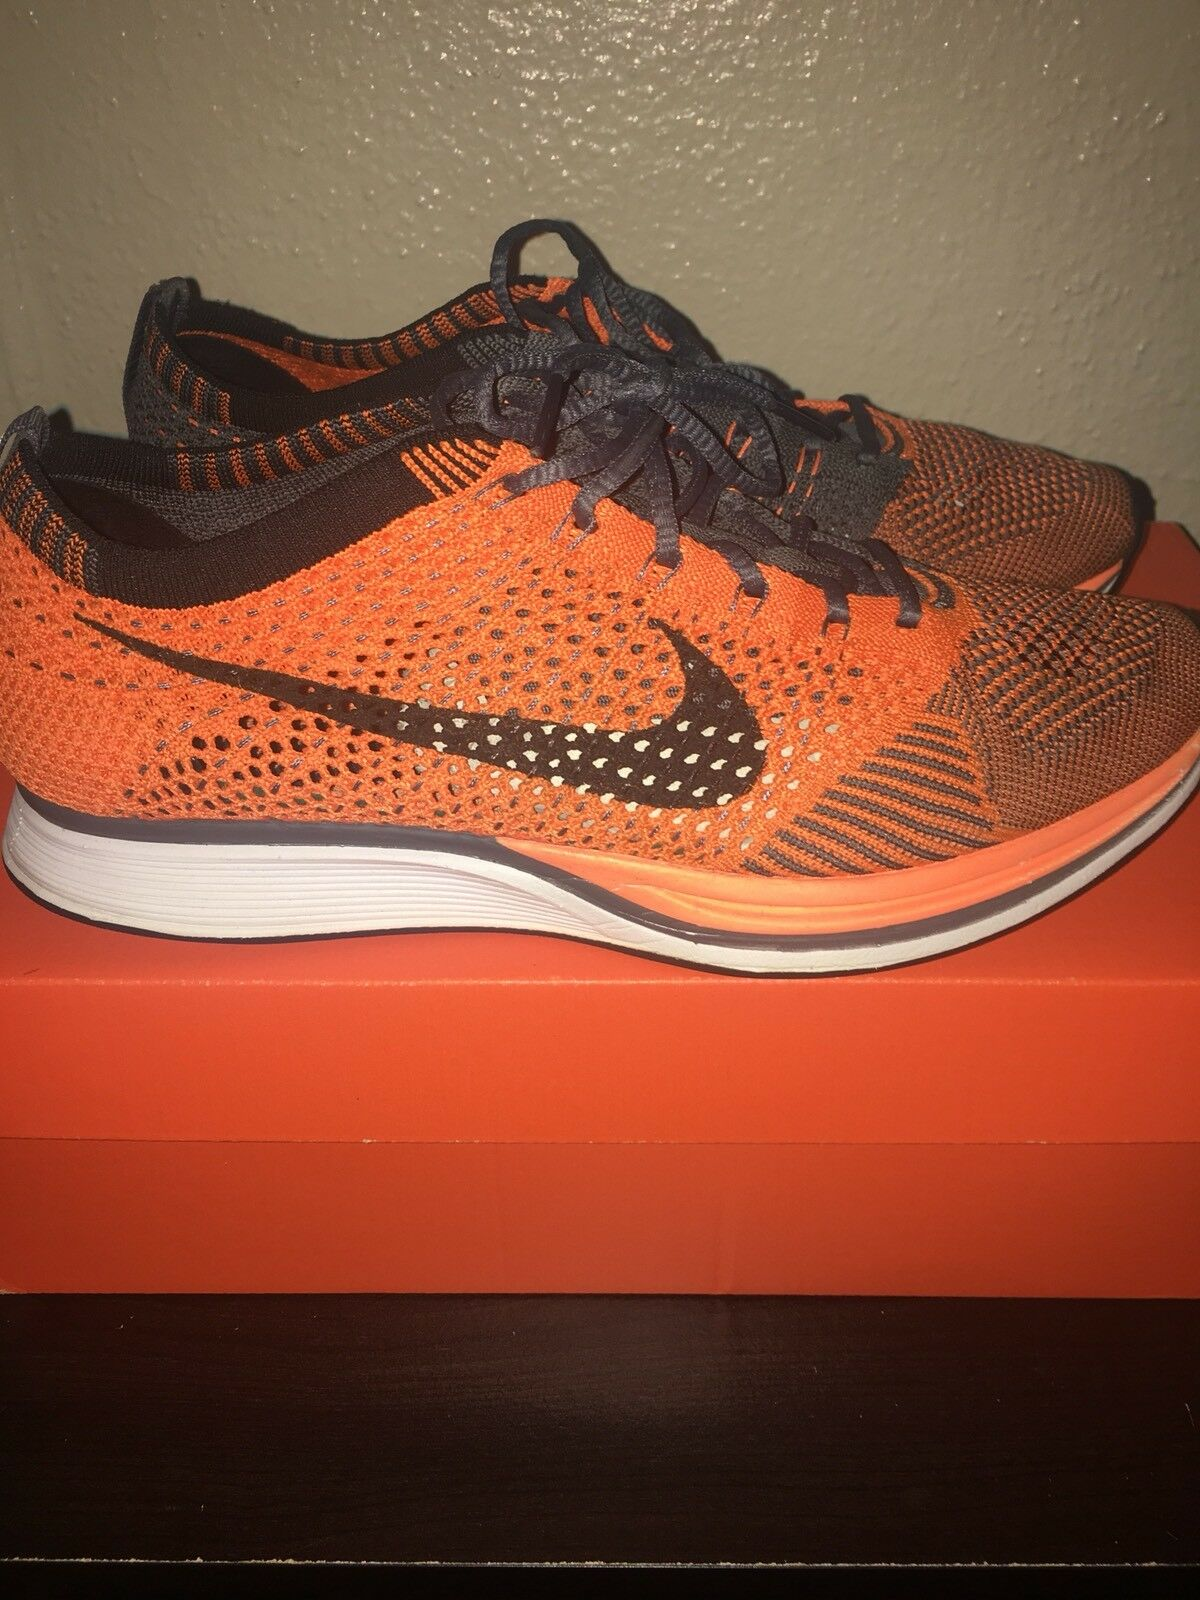 Nike Flyknit Racer orange- Men's Size 7.5 Excellent Condition